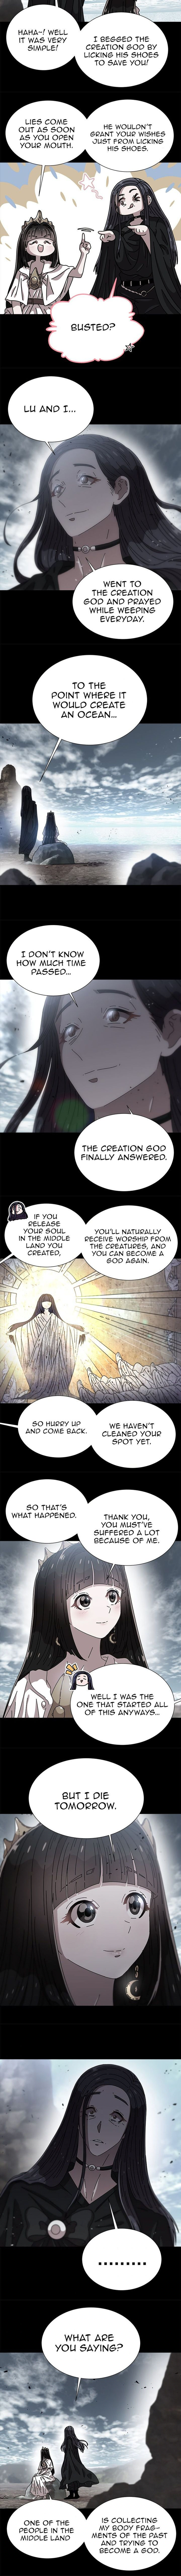 i_was_born_as_the_demon_lords_daughter_61_6